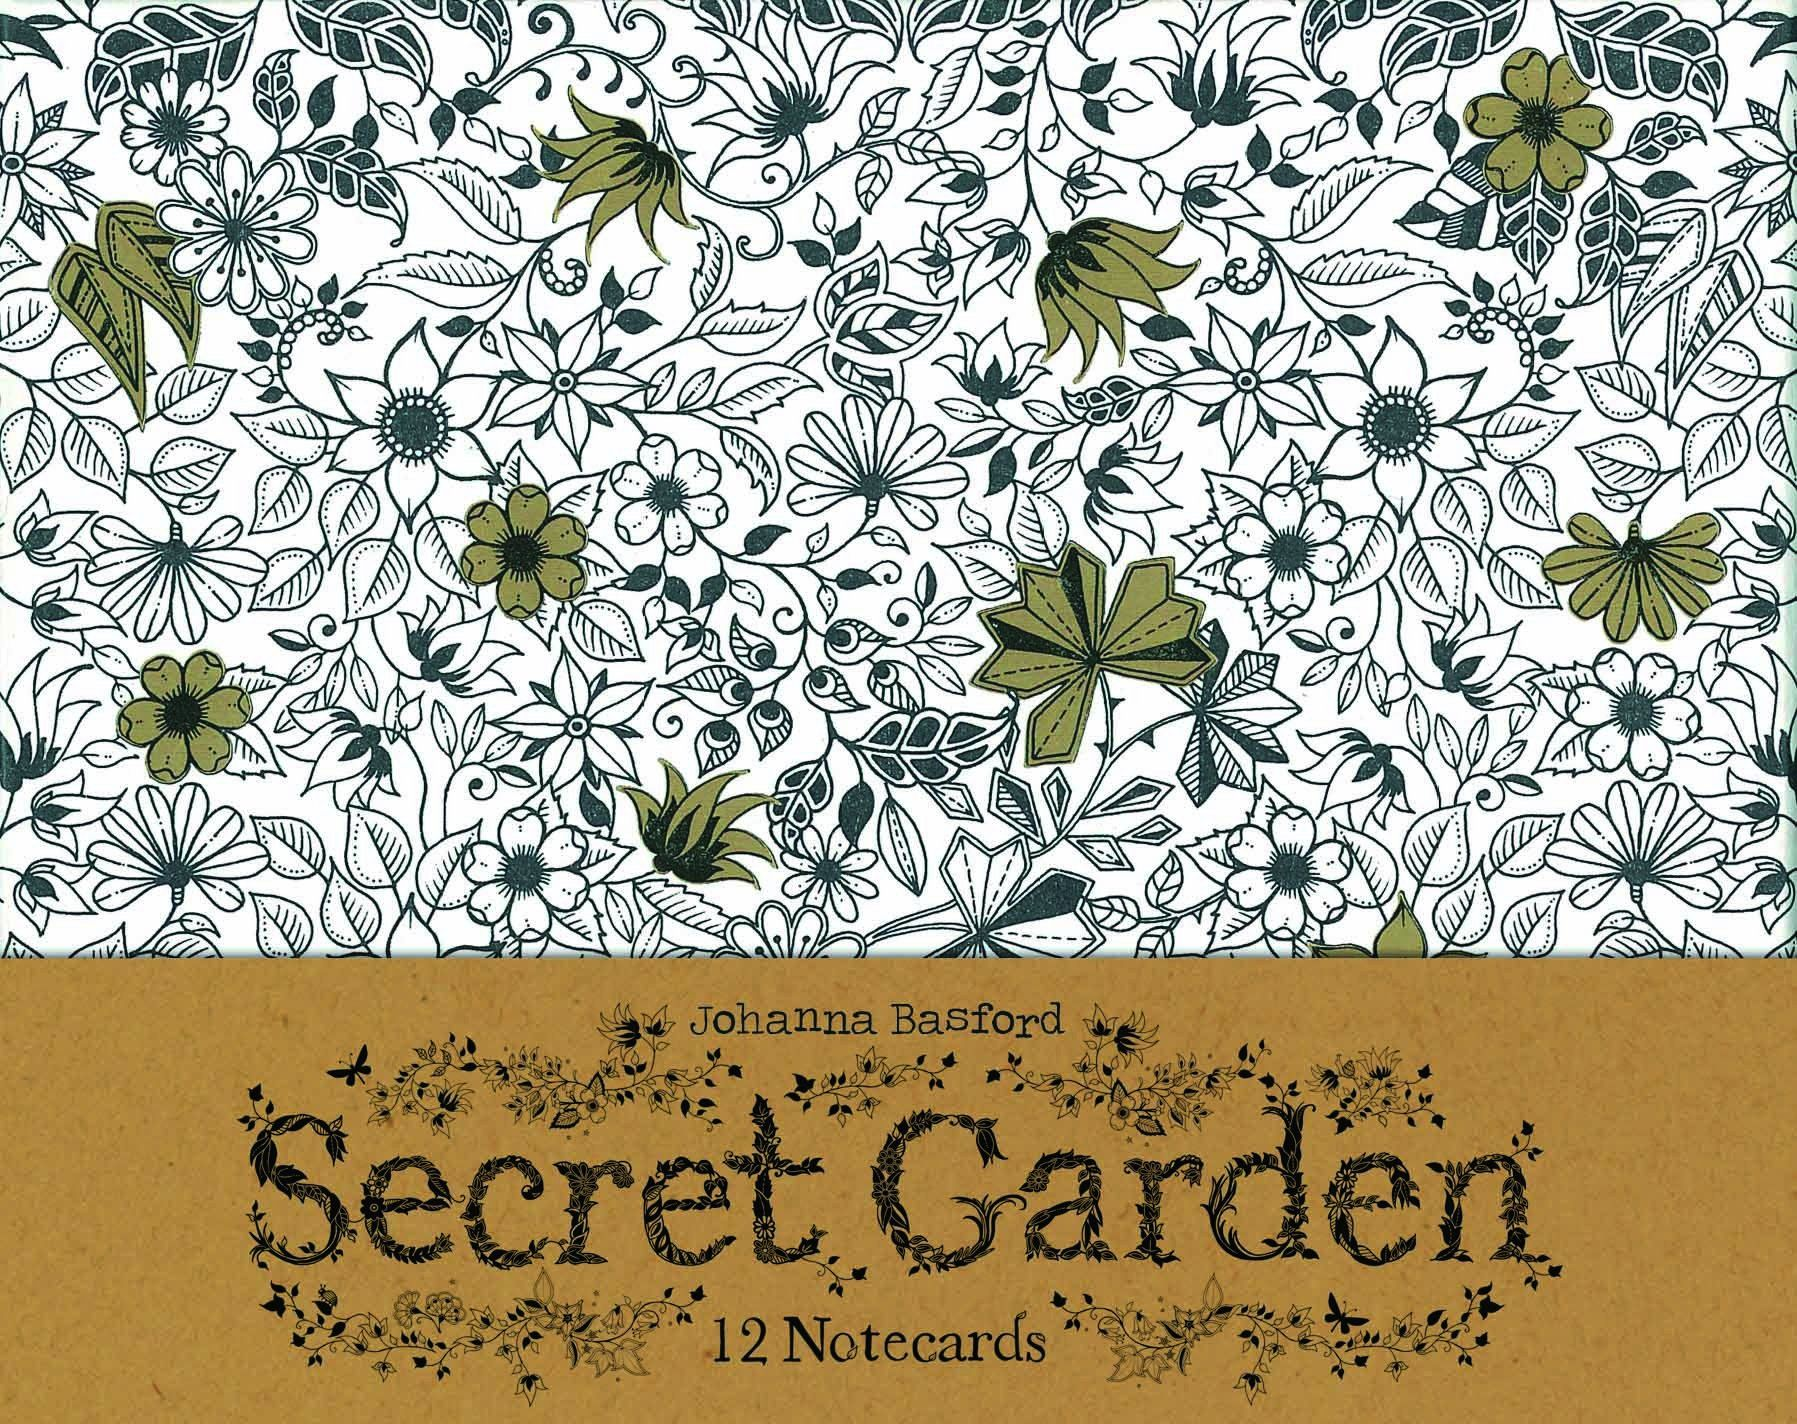 Secret Garden 12 Notecards Johanna Basford BooksAdult ColoringColoring